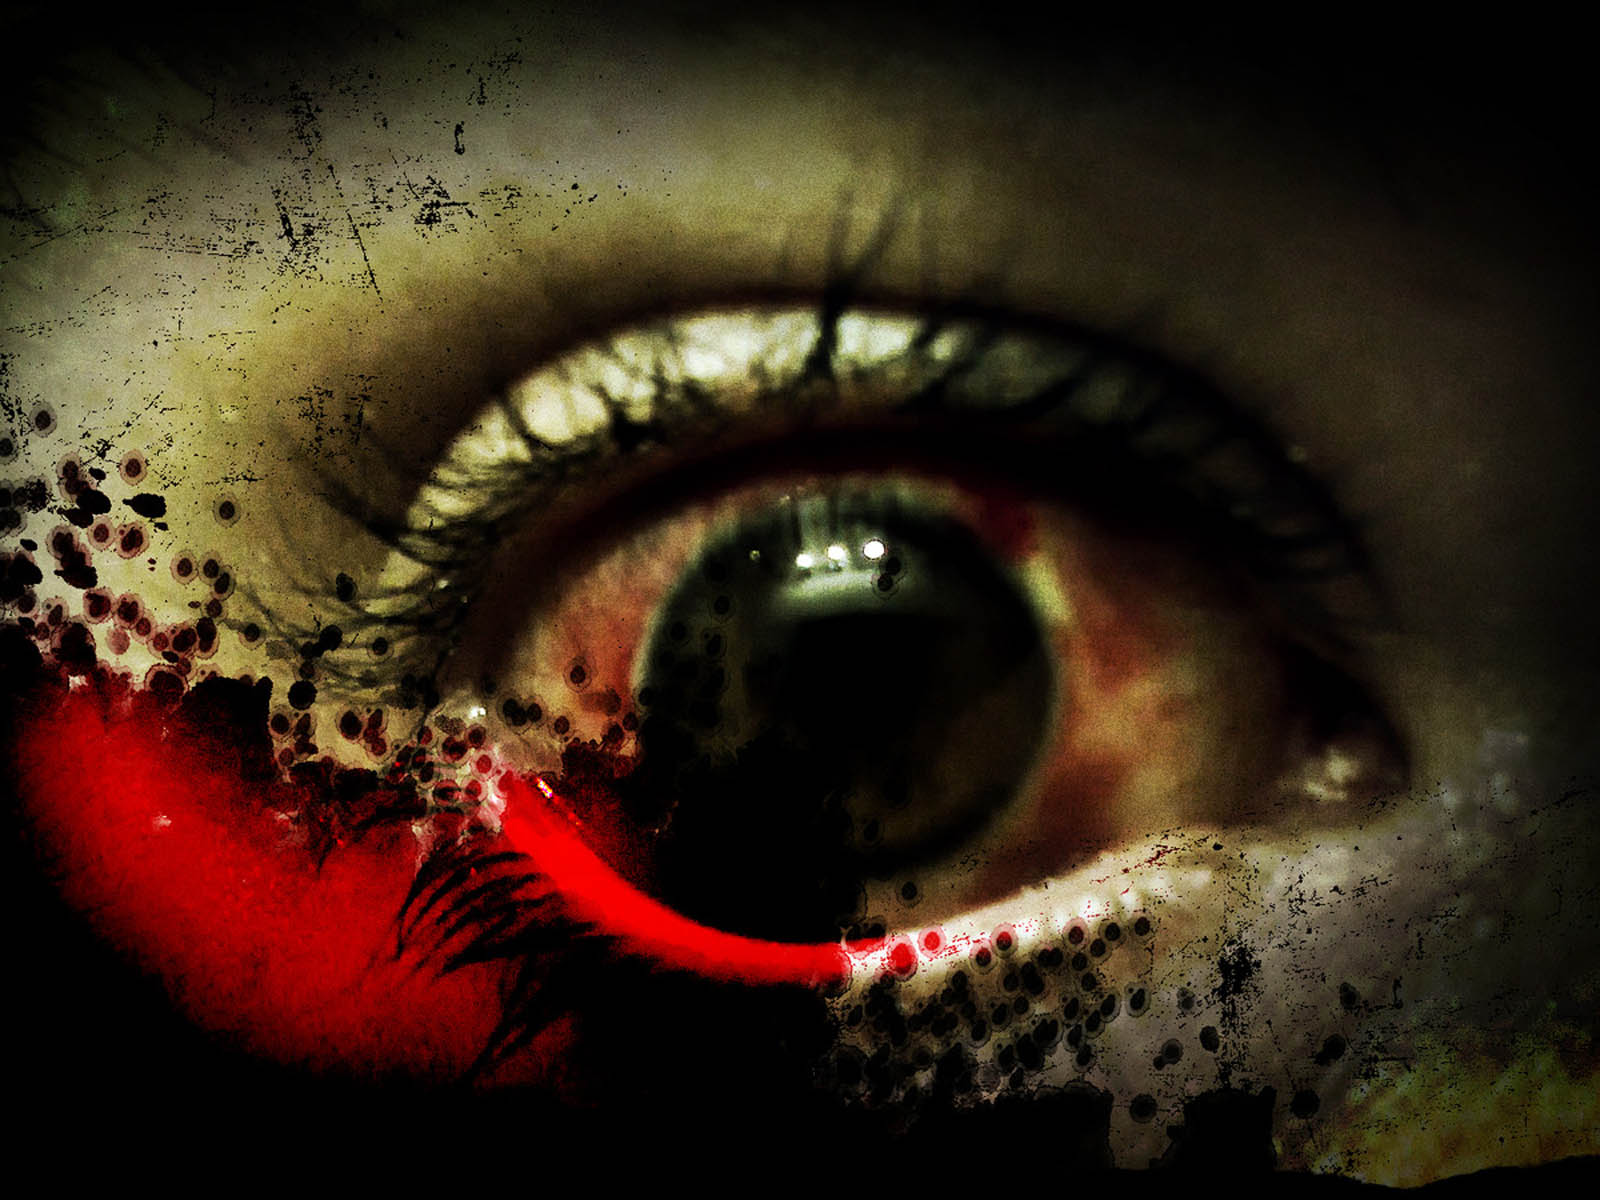 Download Free Wallpapers Horror Wallpapers: Free Scary Wallpaper